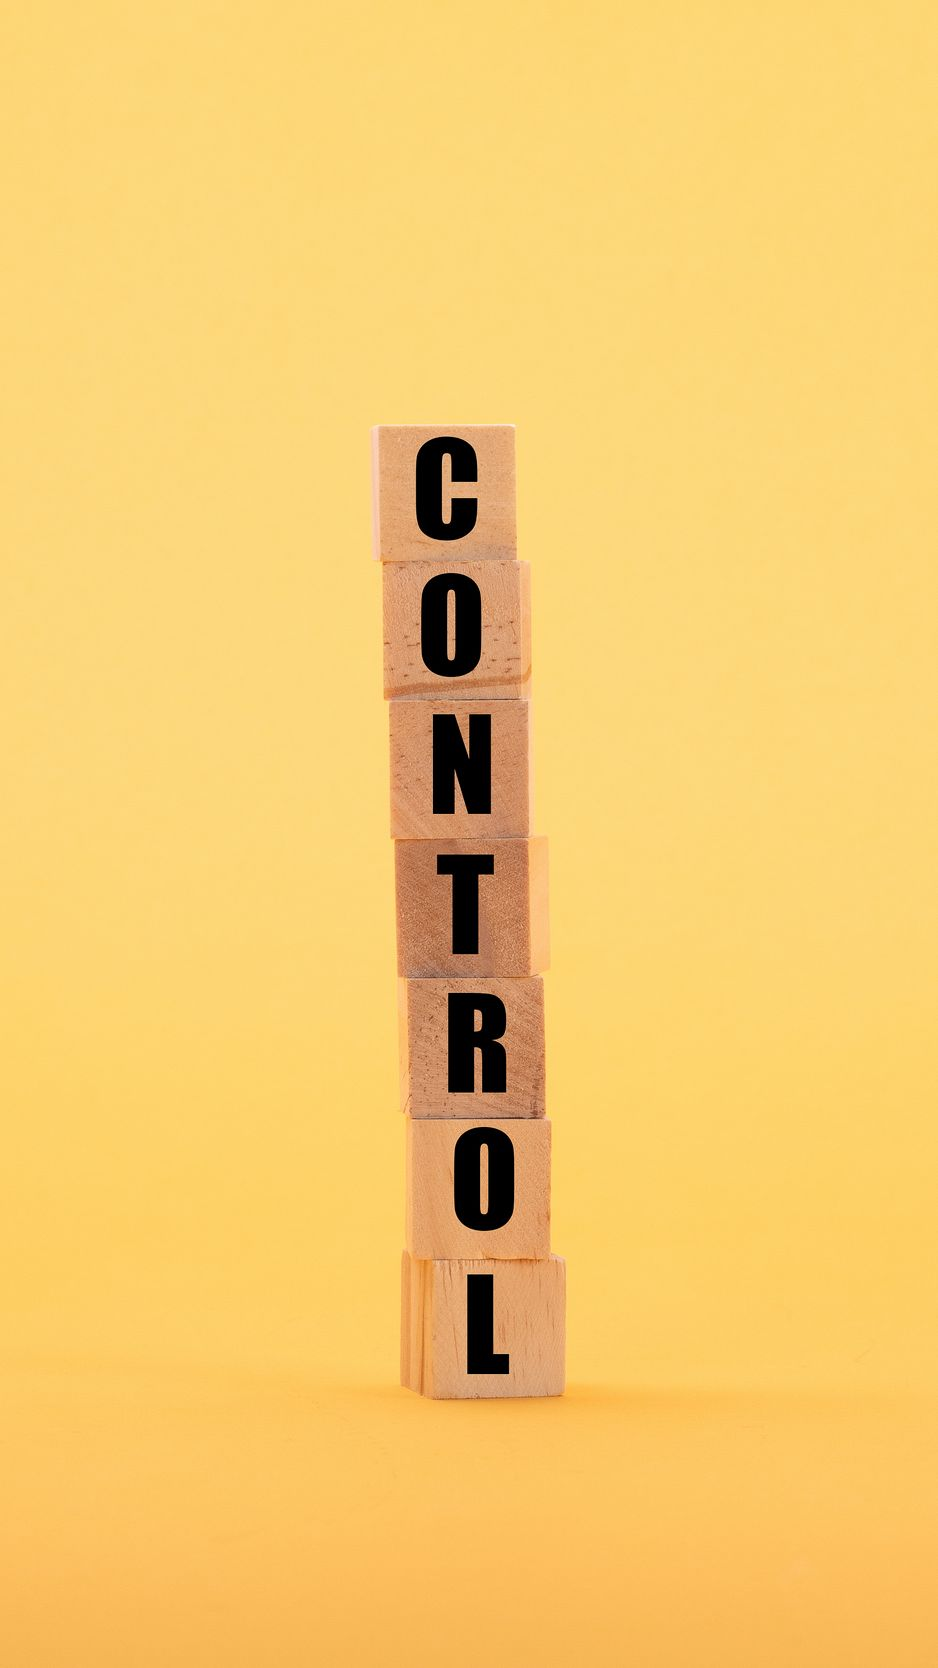 938x1668 Wallpaper control, word, cubes, yellow